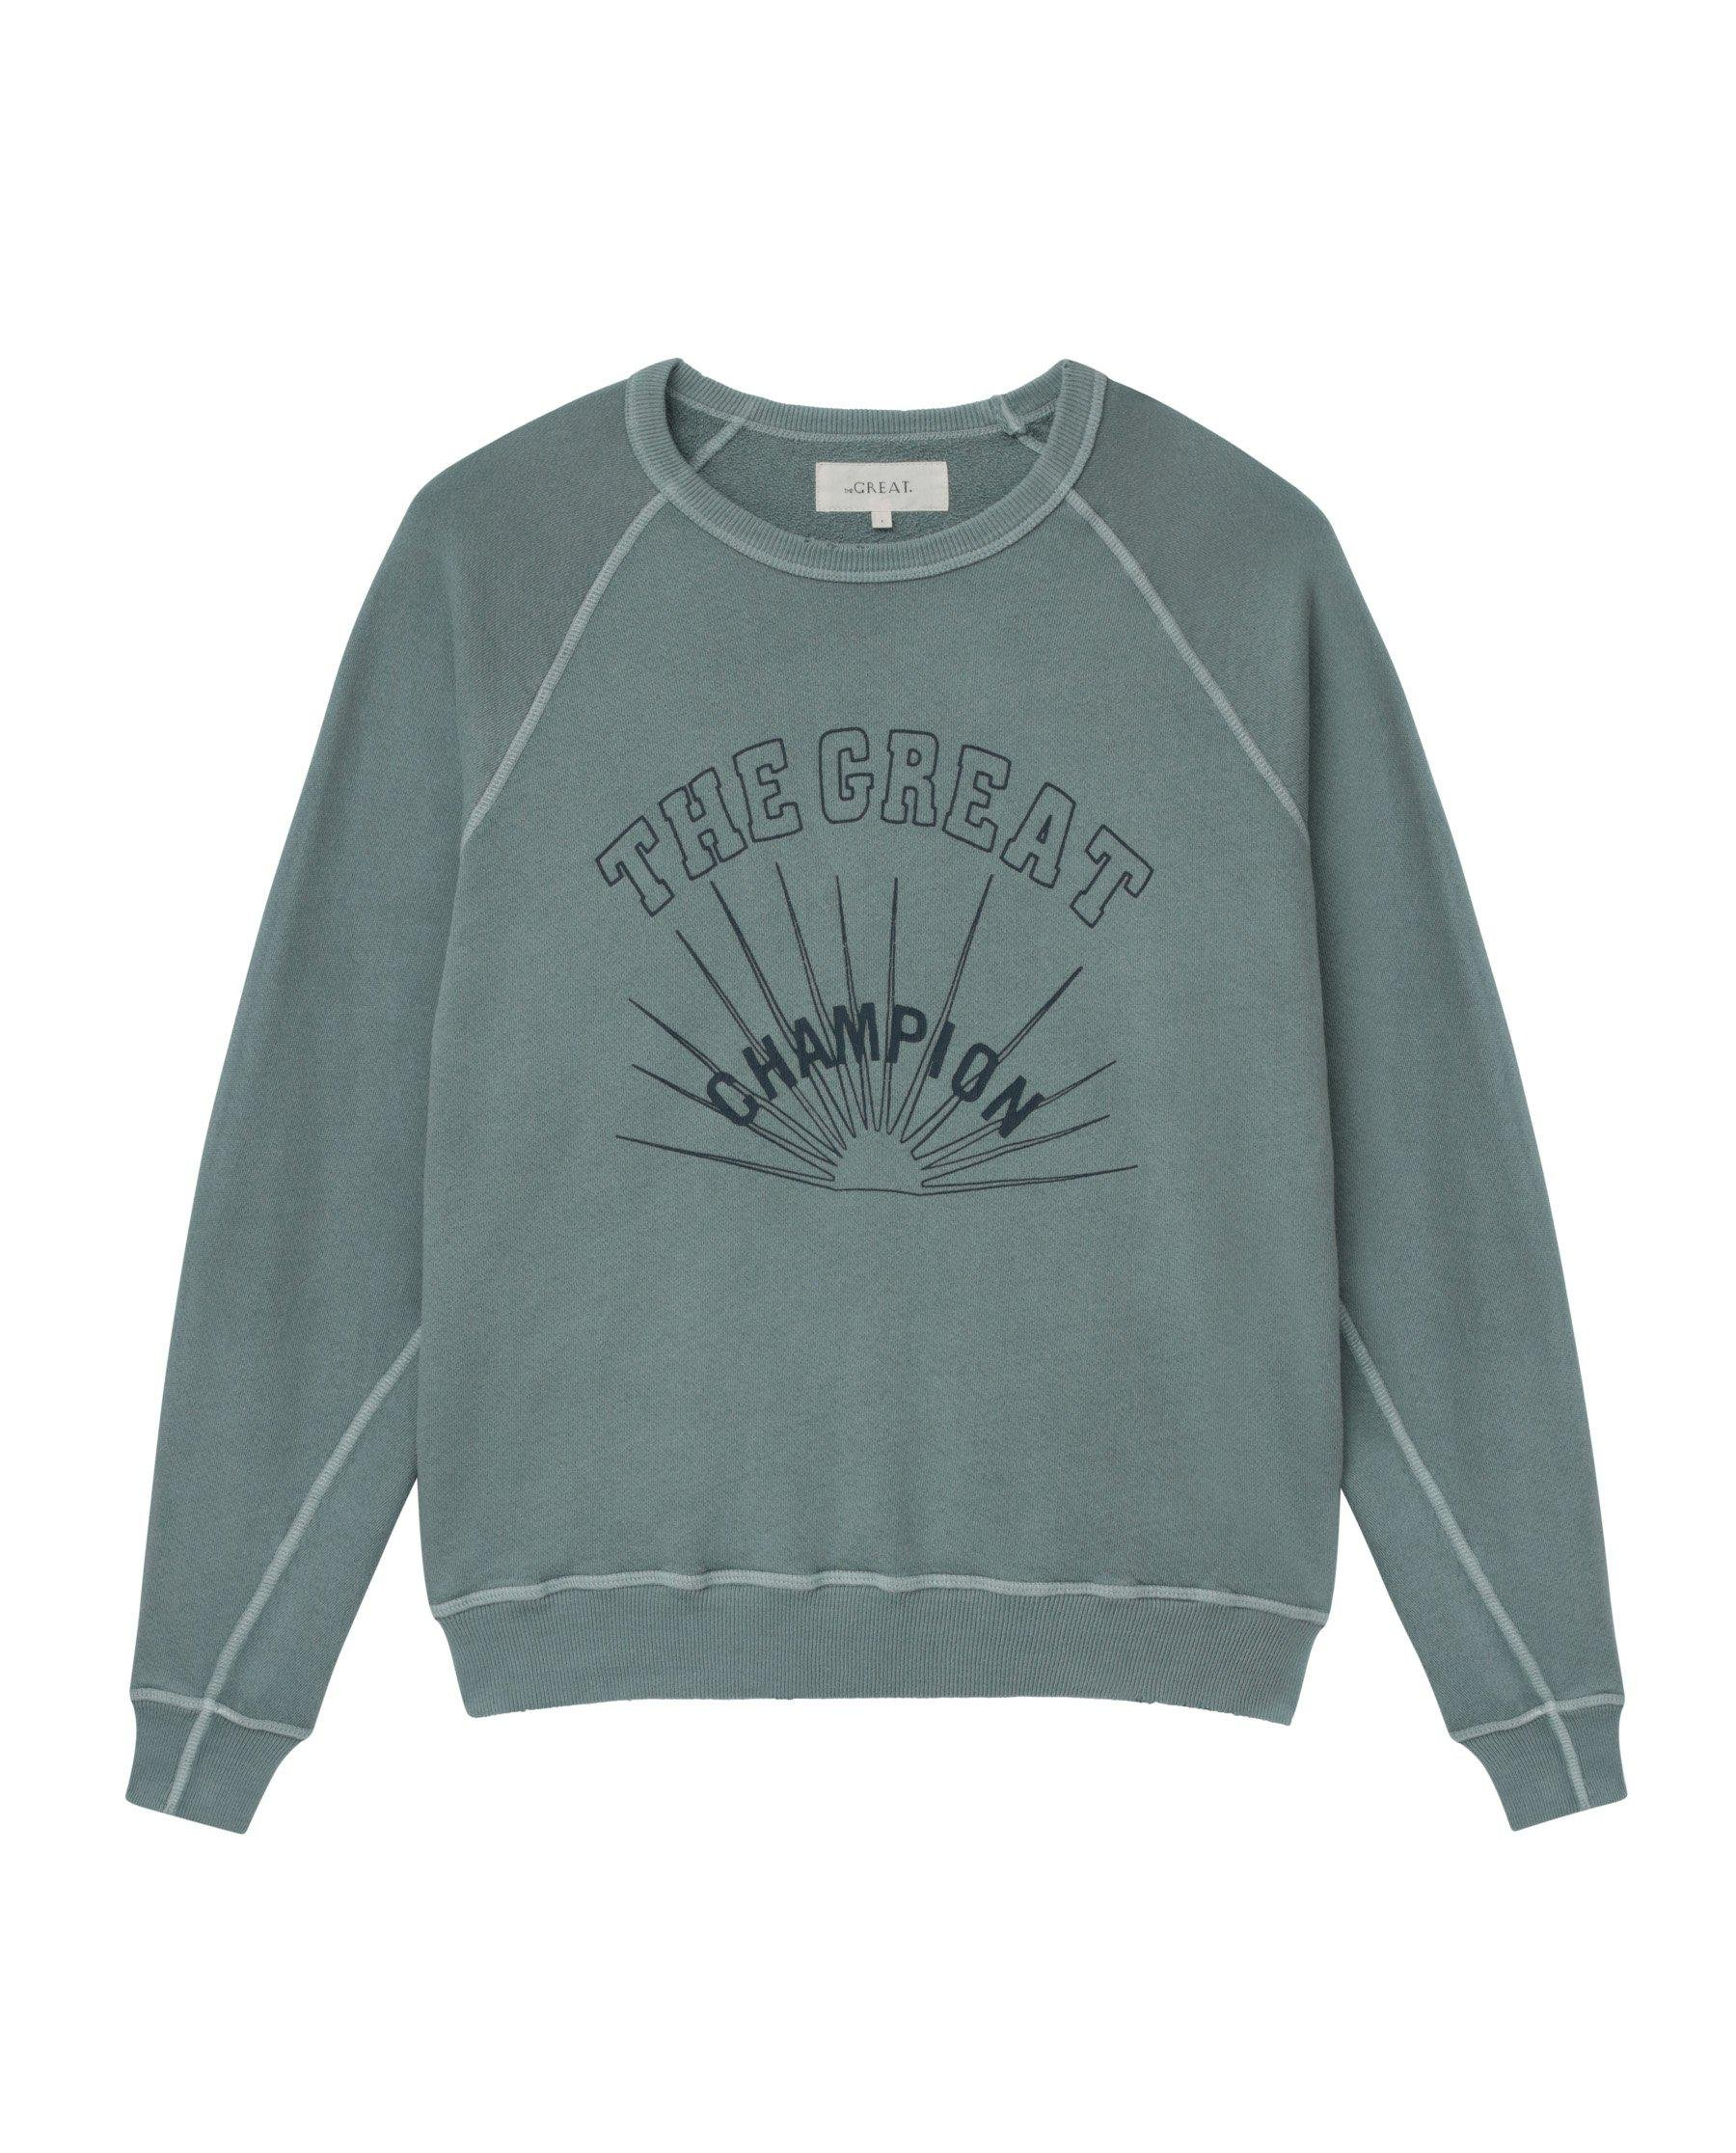 The College Sweatshirt. Graphic -- Dusty Blue with Champion Graphic 3